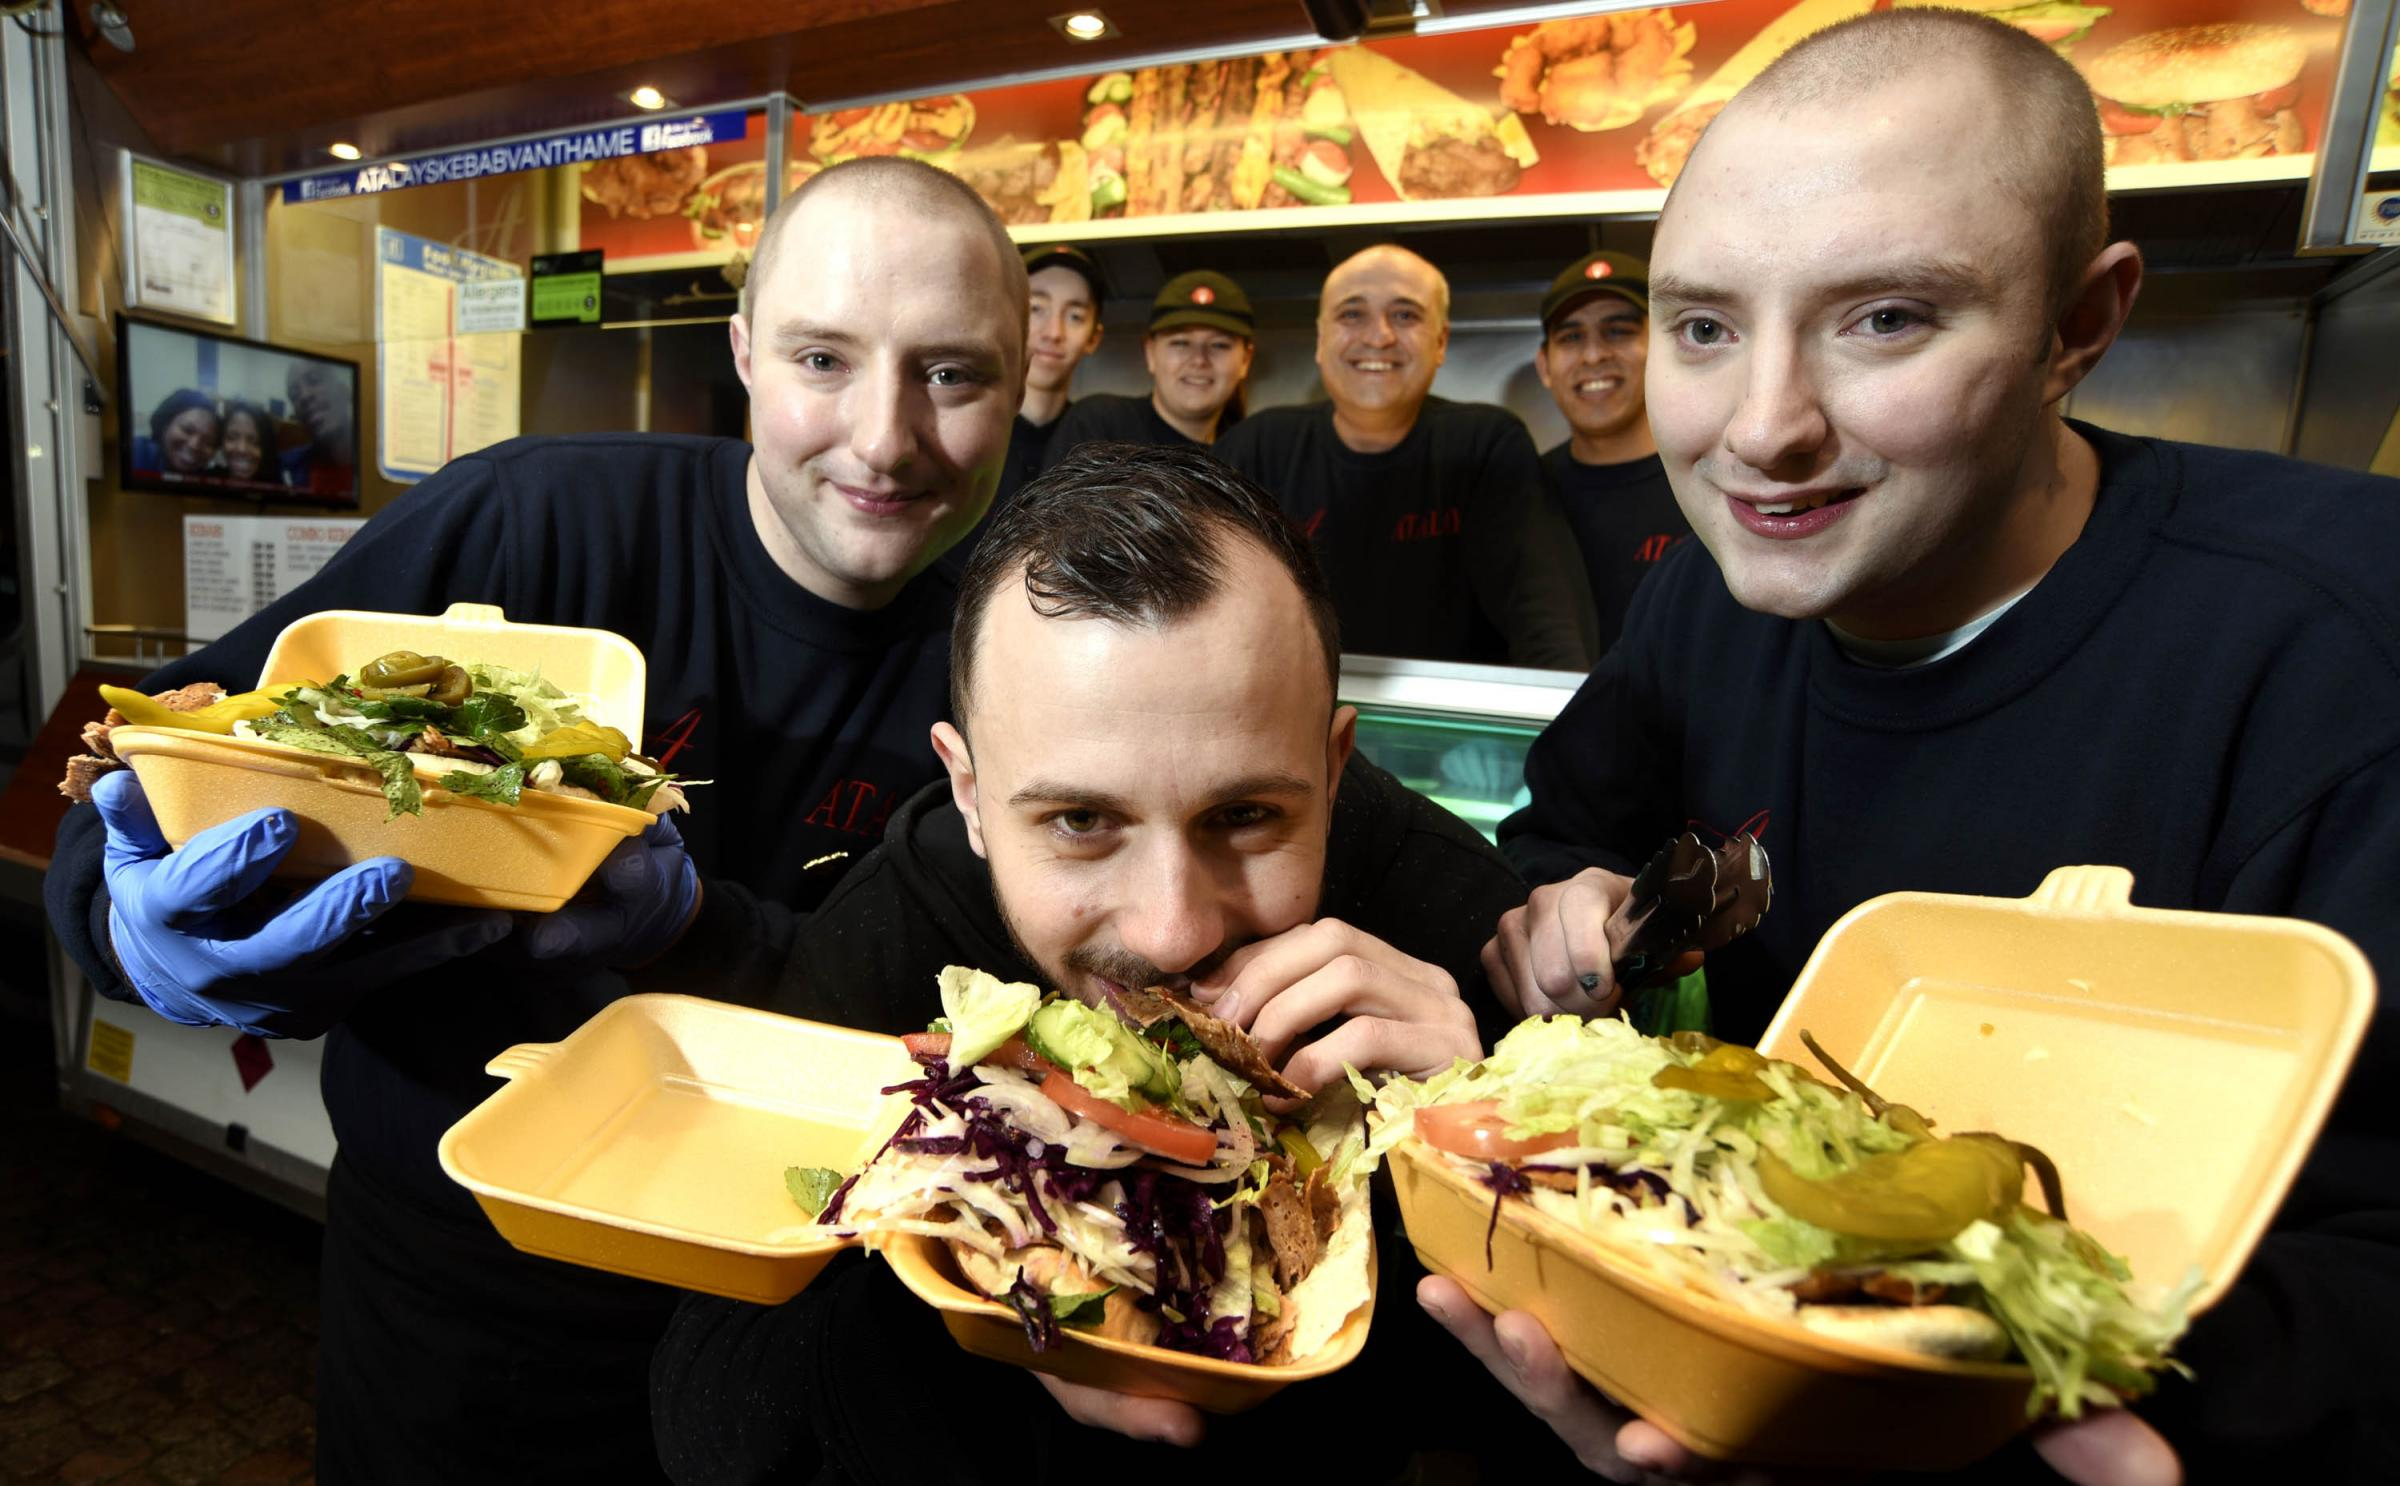 Kebab awards: Two Oxfordshire vans compete for top prize